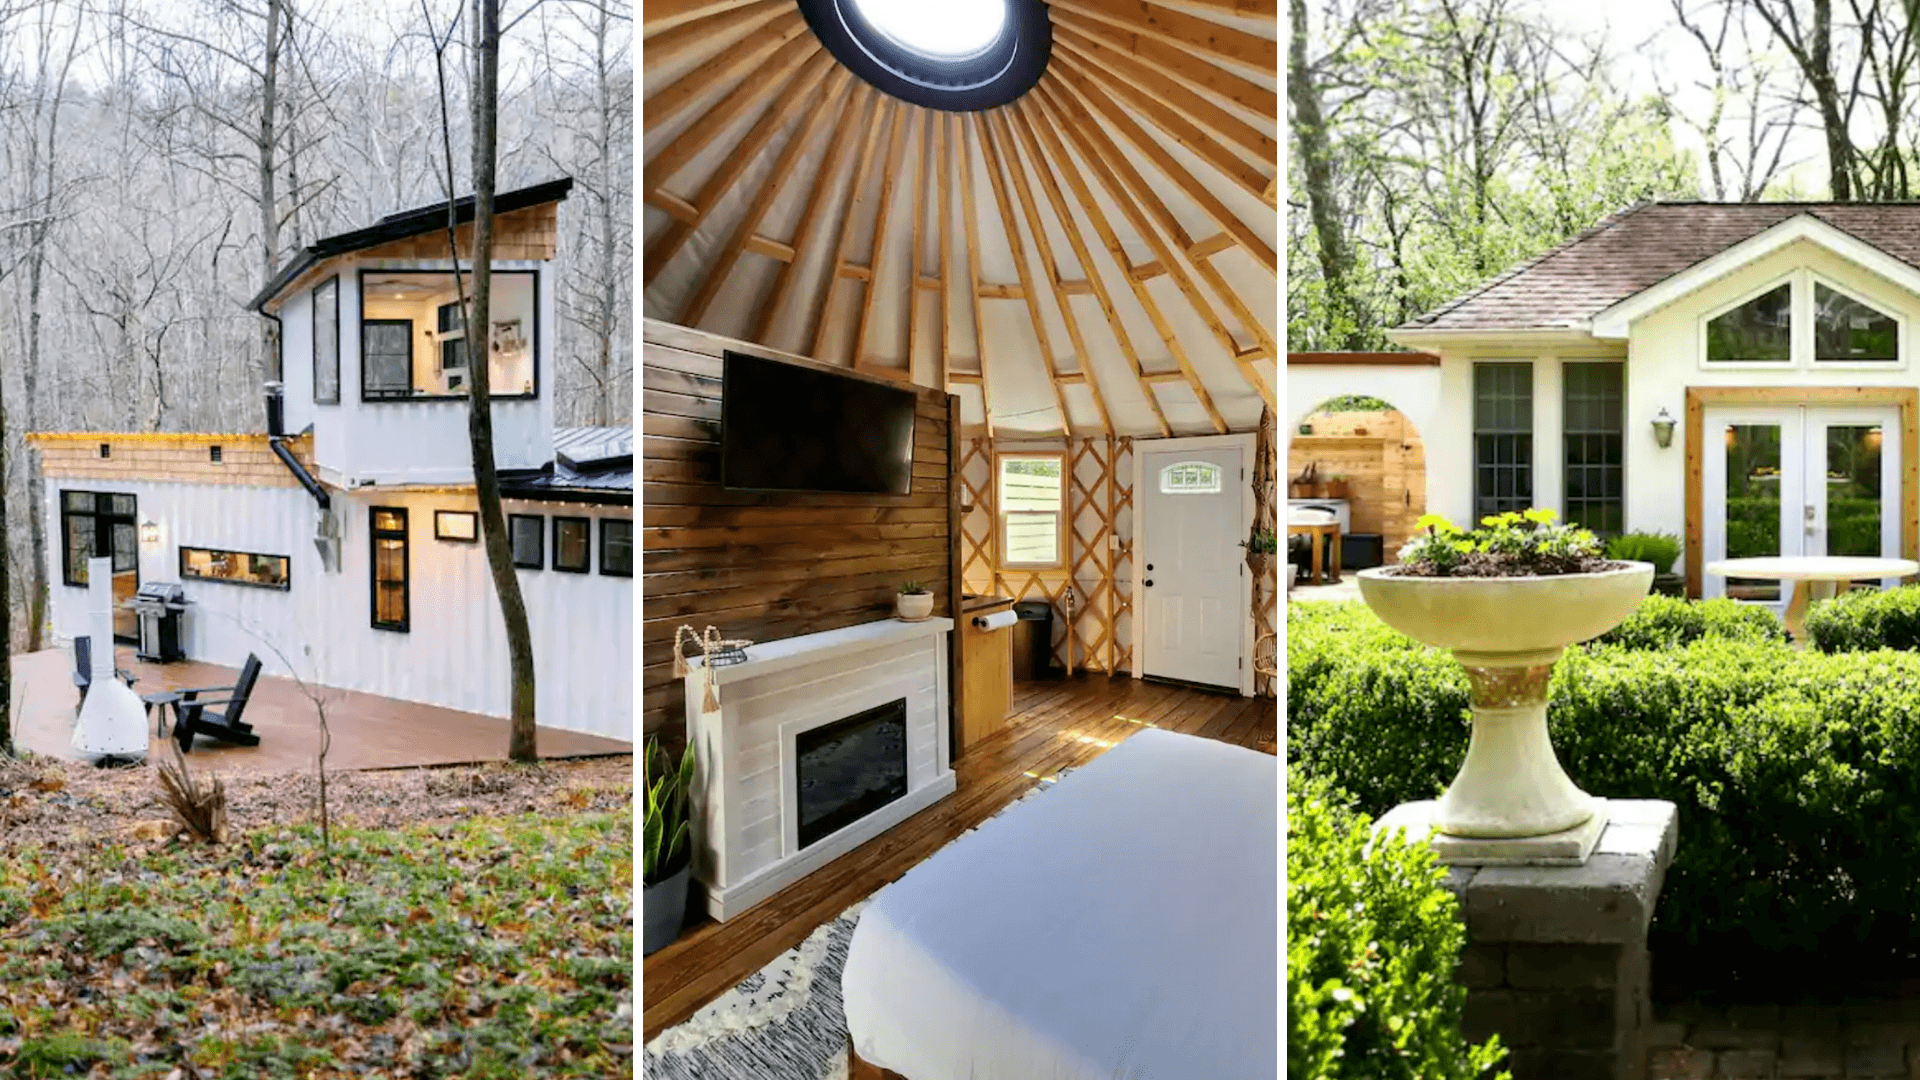 Best Airbnb stays in Ohio